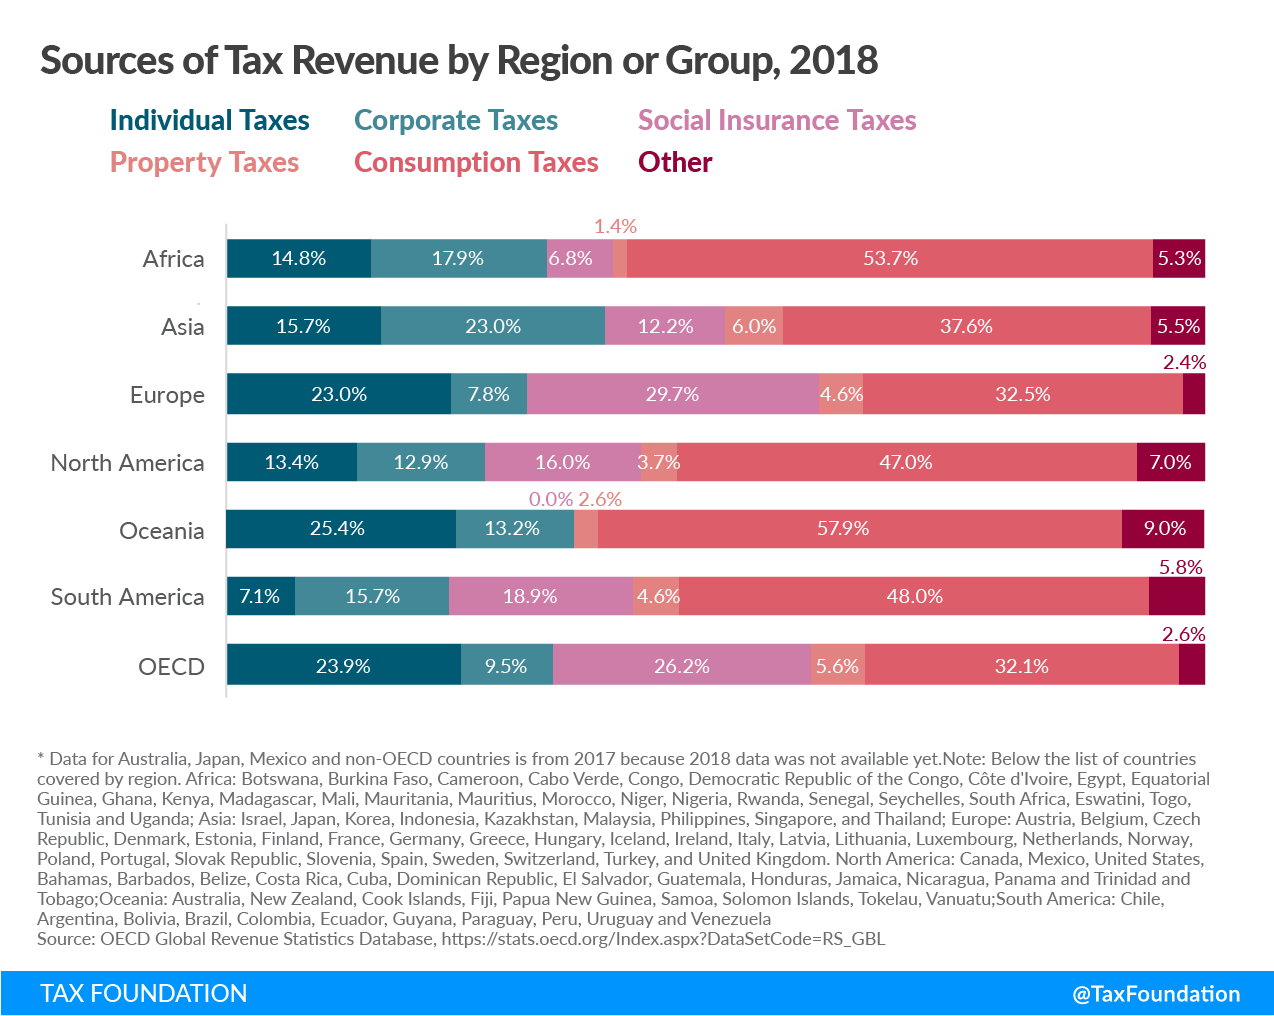 Asia tax revenue sources, Europe tax revenue sources, Africa tax revenue sources, Oceania tax revenue sources, South America tax revenue sources, North America tax revenue sources